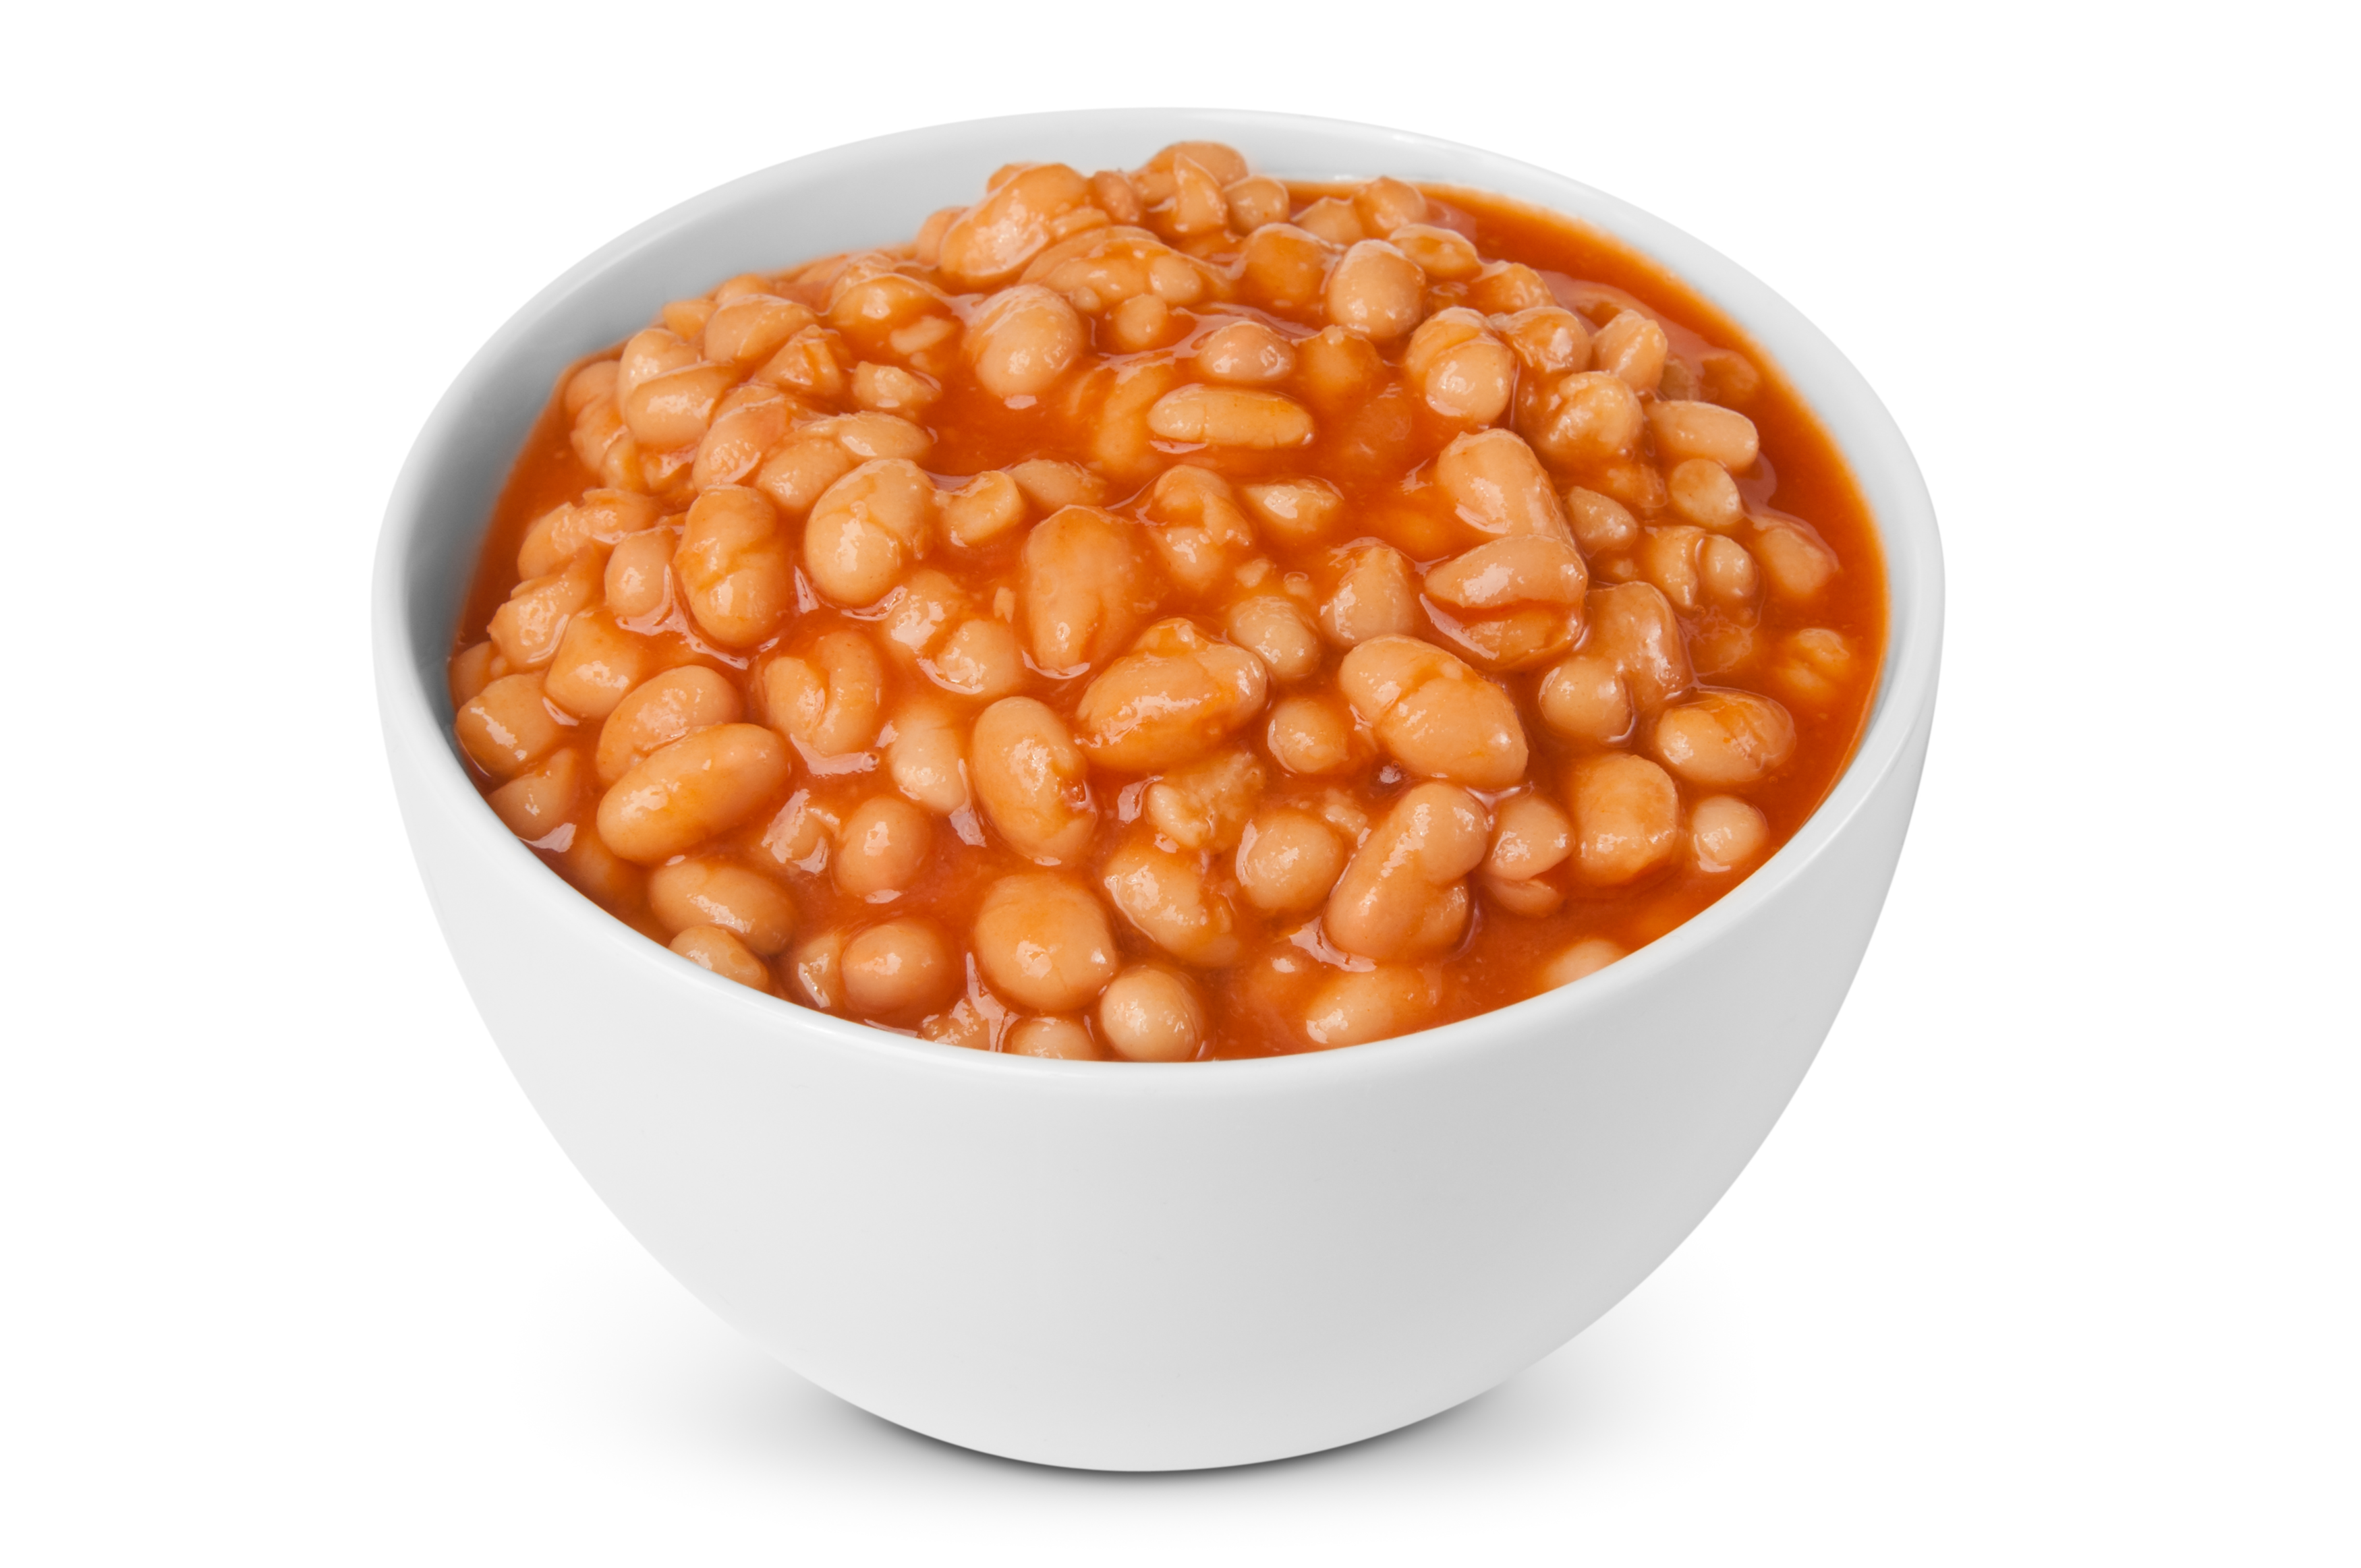 Baked Beans Png Free Baked Beans Png T 2700856 Png Images Pngio